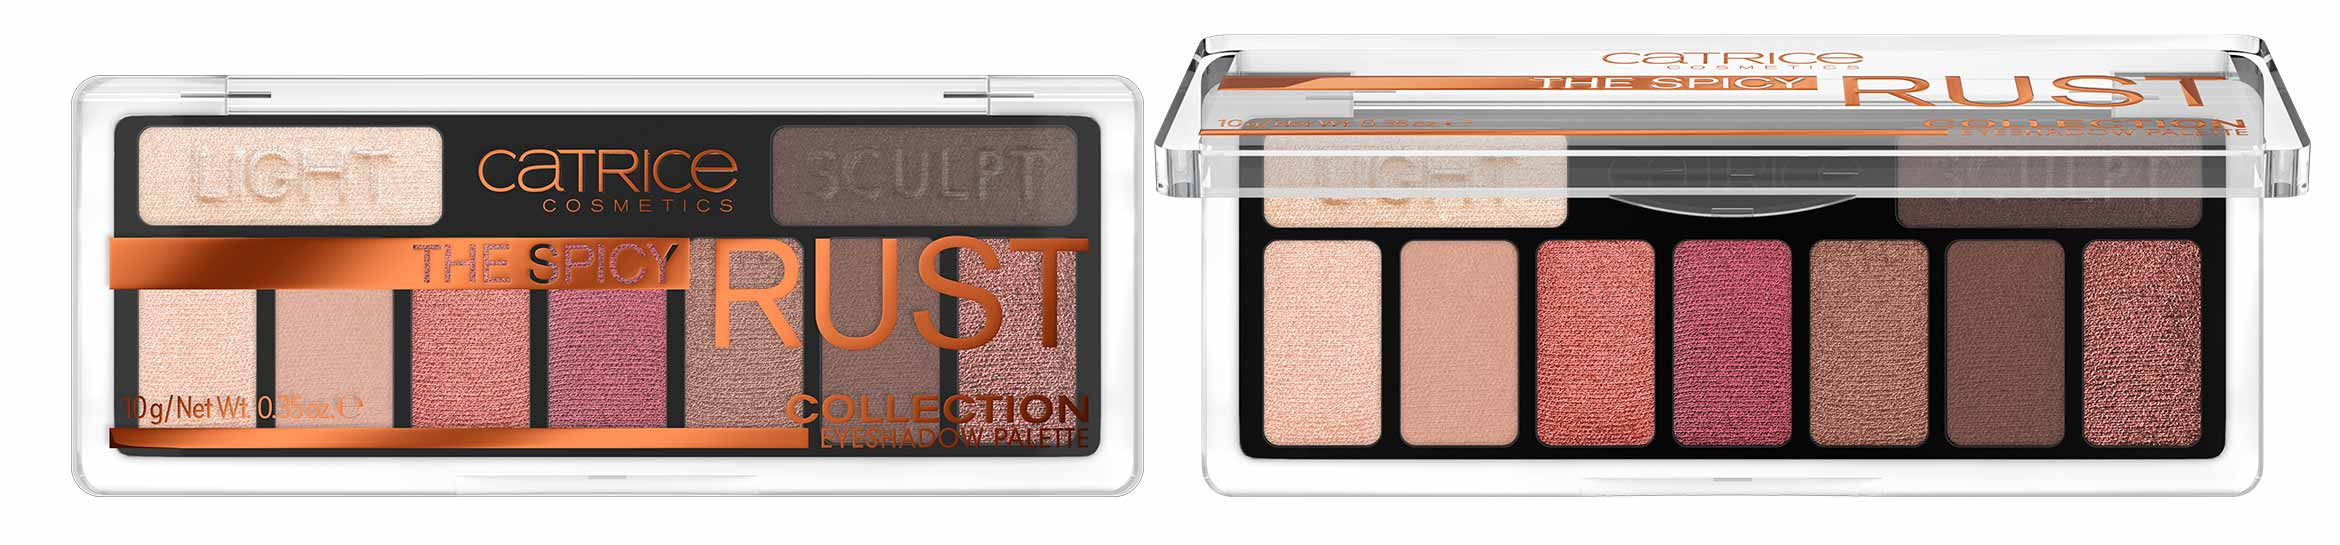 catrice-the-spicy-rust-collection-eyeshadow-palette